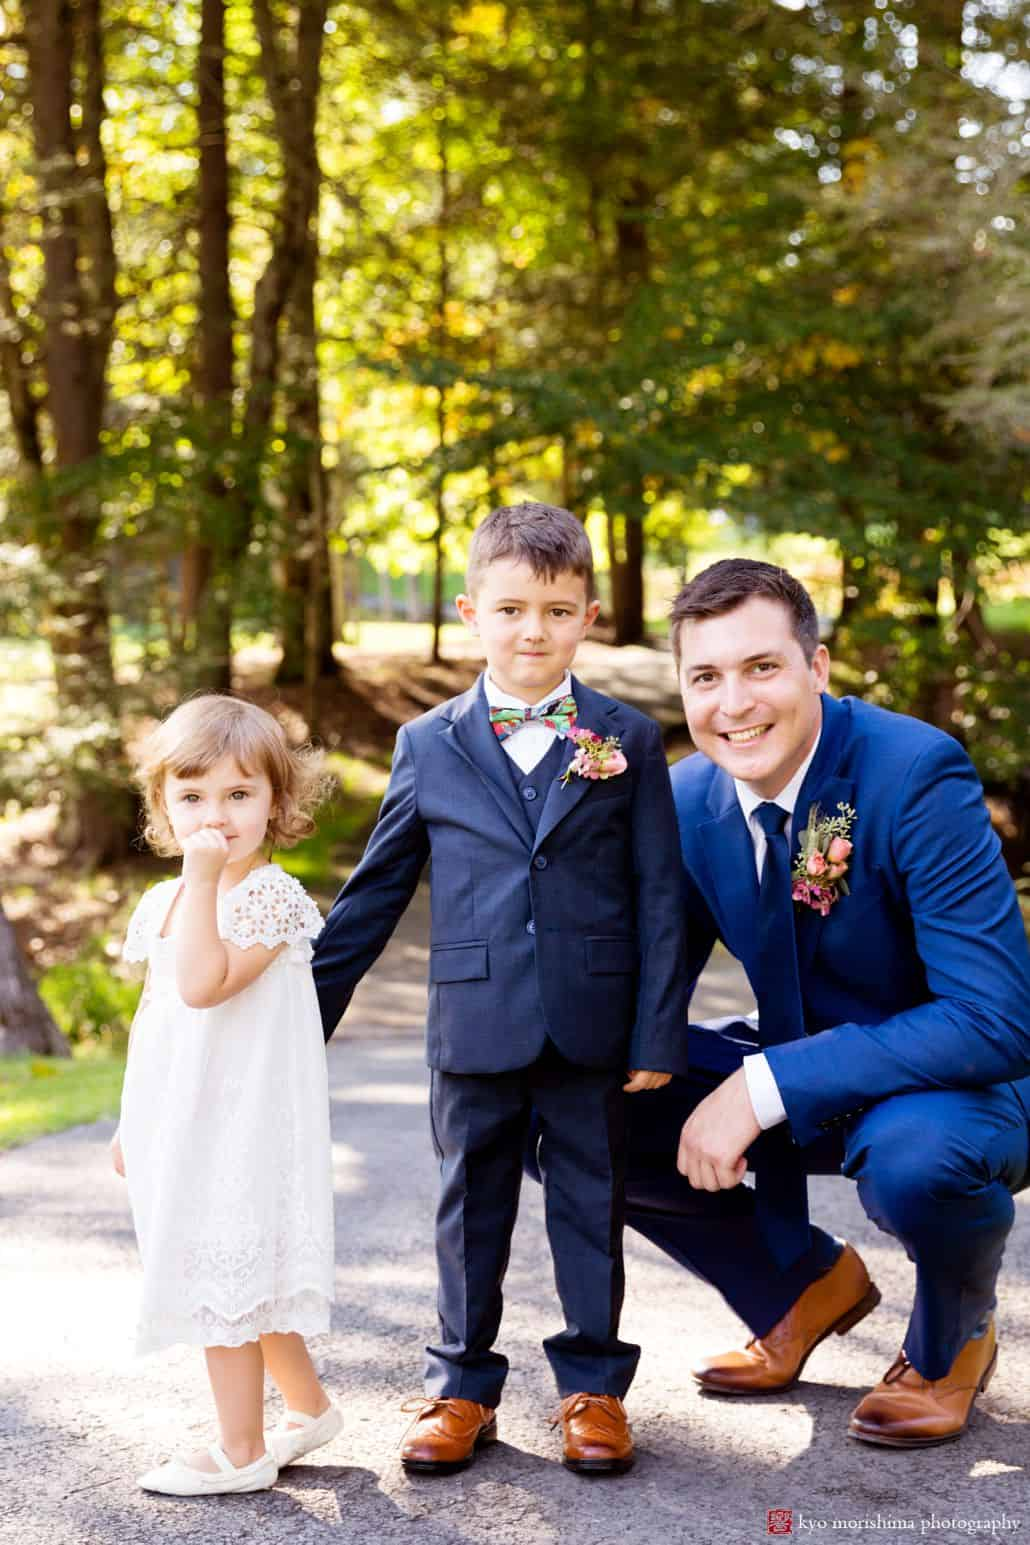 Groom poses with ring bearer and flower girl along wooded path in Woodloch Pines, cute wedding pictures, ourtood wedding photography ideas, Poconos wedding photographer. Woodloch Pines wedding.